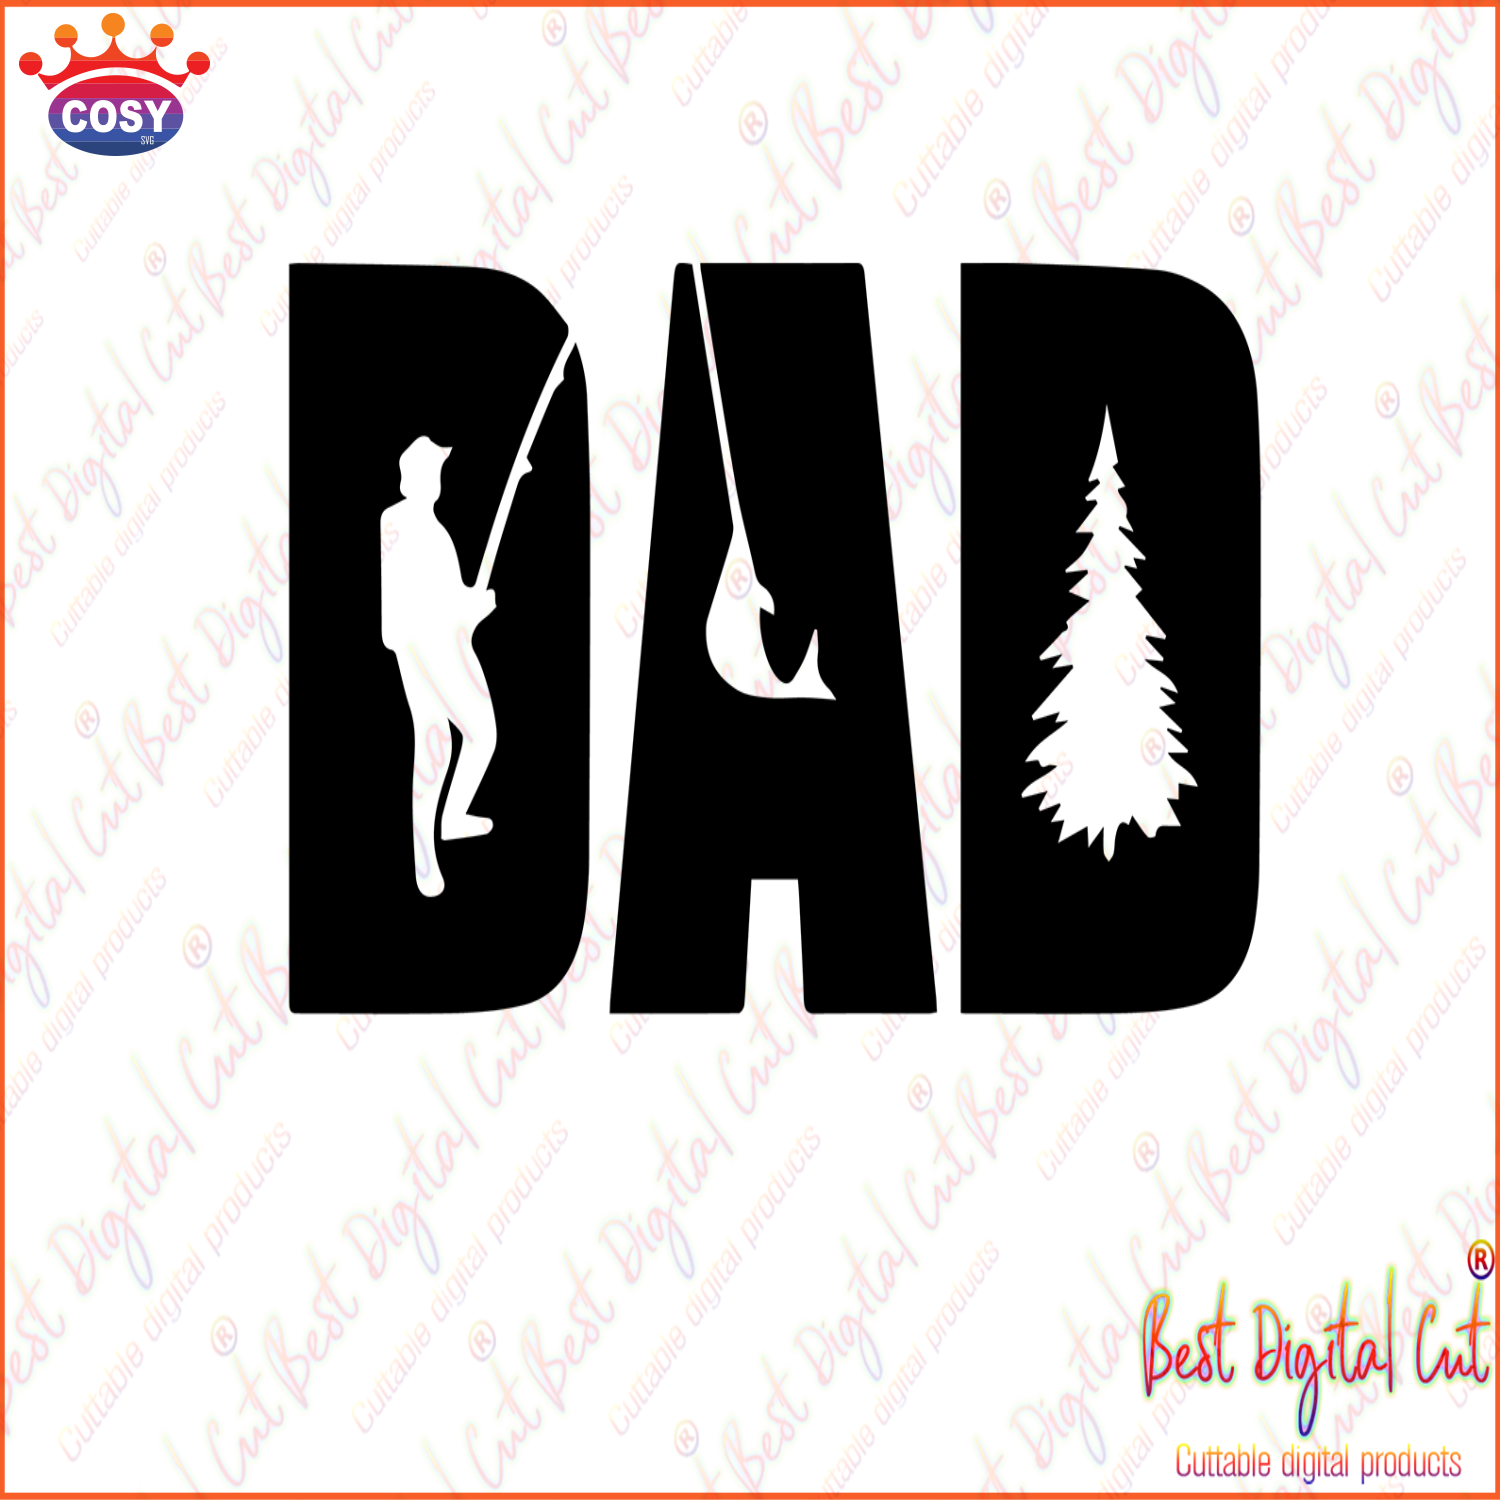 Download Dad Fishing Fathers Day Gift Happy Fathers Day Love Father Father Gift Fathers Day Shirt Gift For Father Happy Fathers Day Gift Daddy Svg Papa Svg Best Dad Cosysvg Com